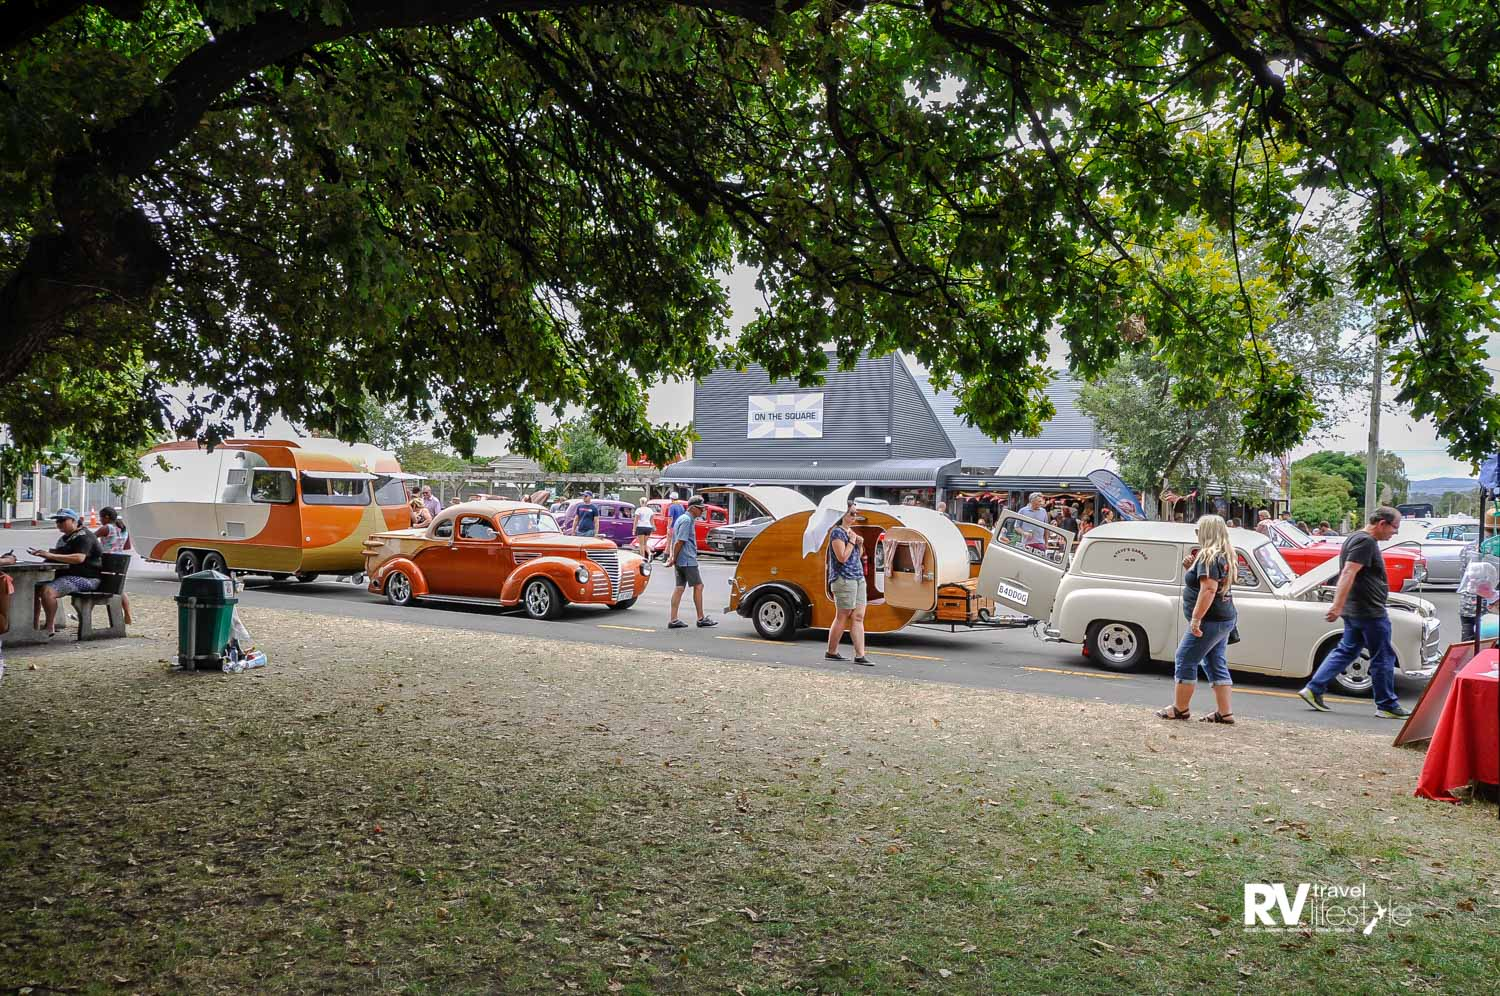 The public loved these two classic, hand-built caravans and the cars they are matched to